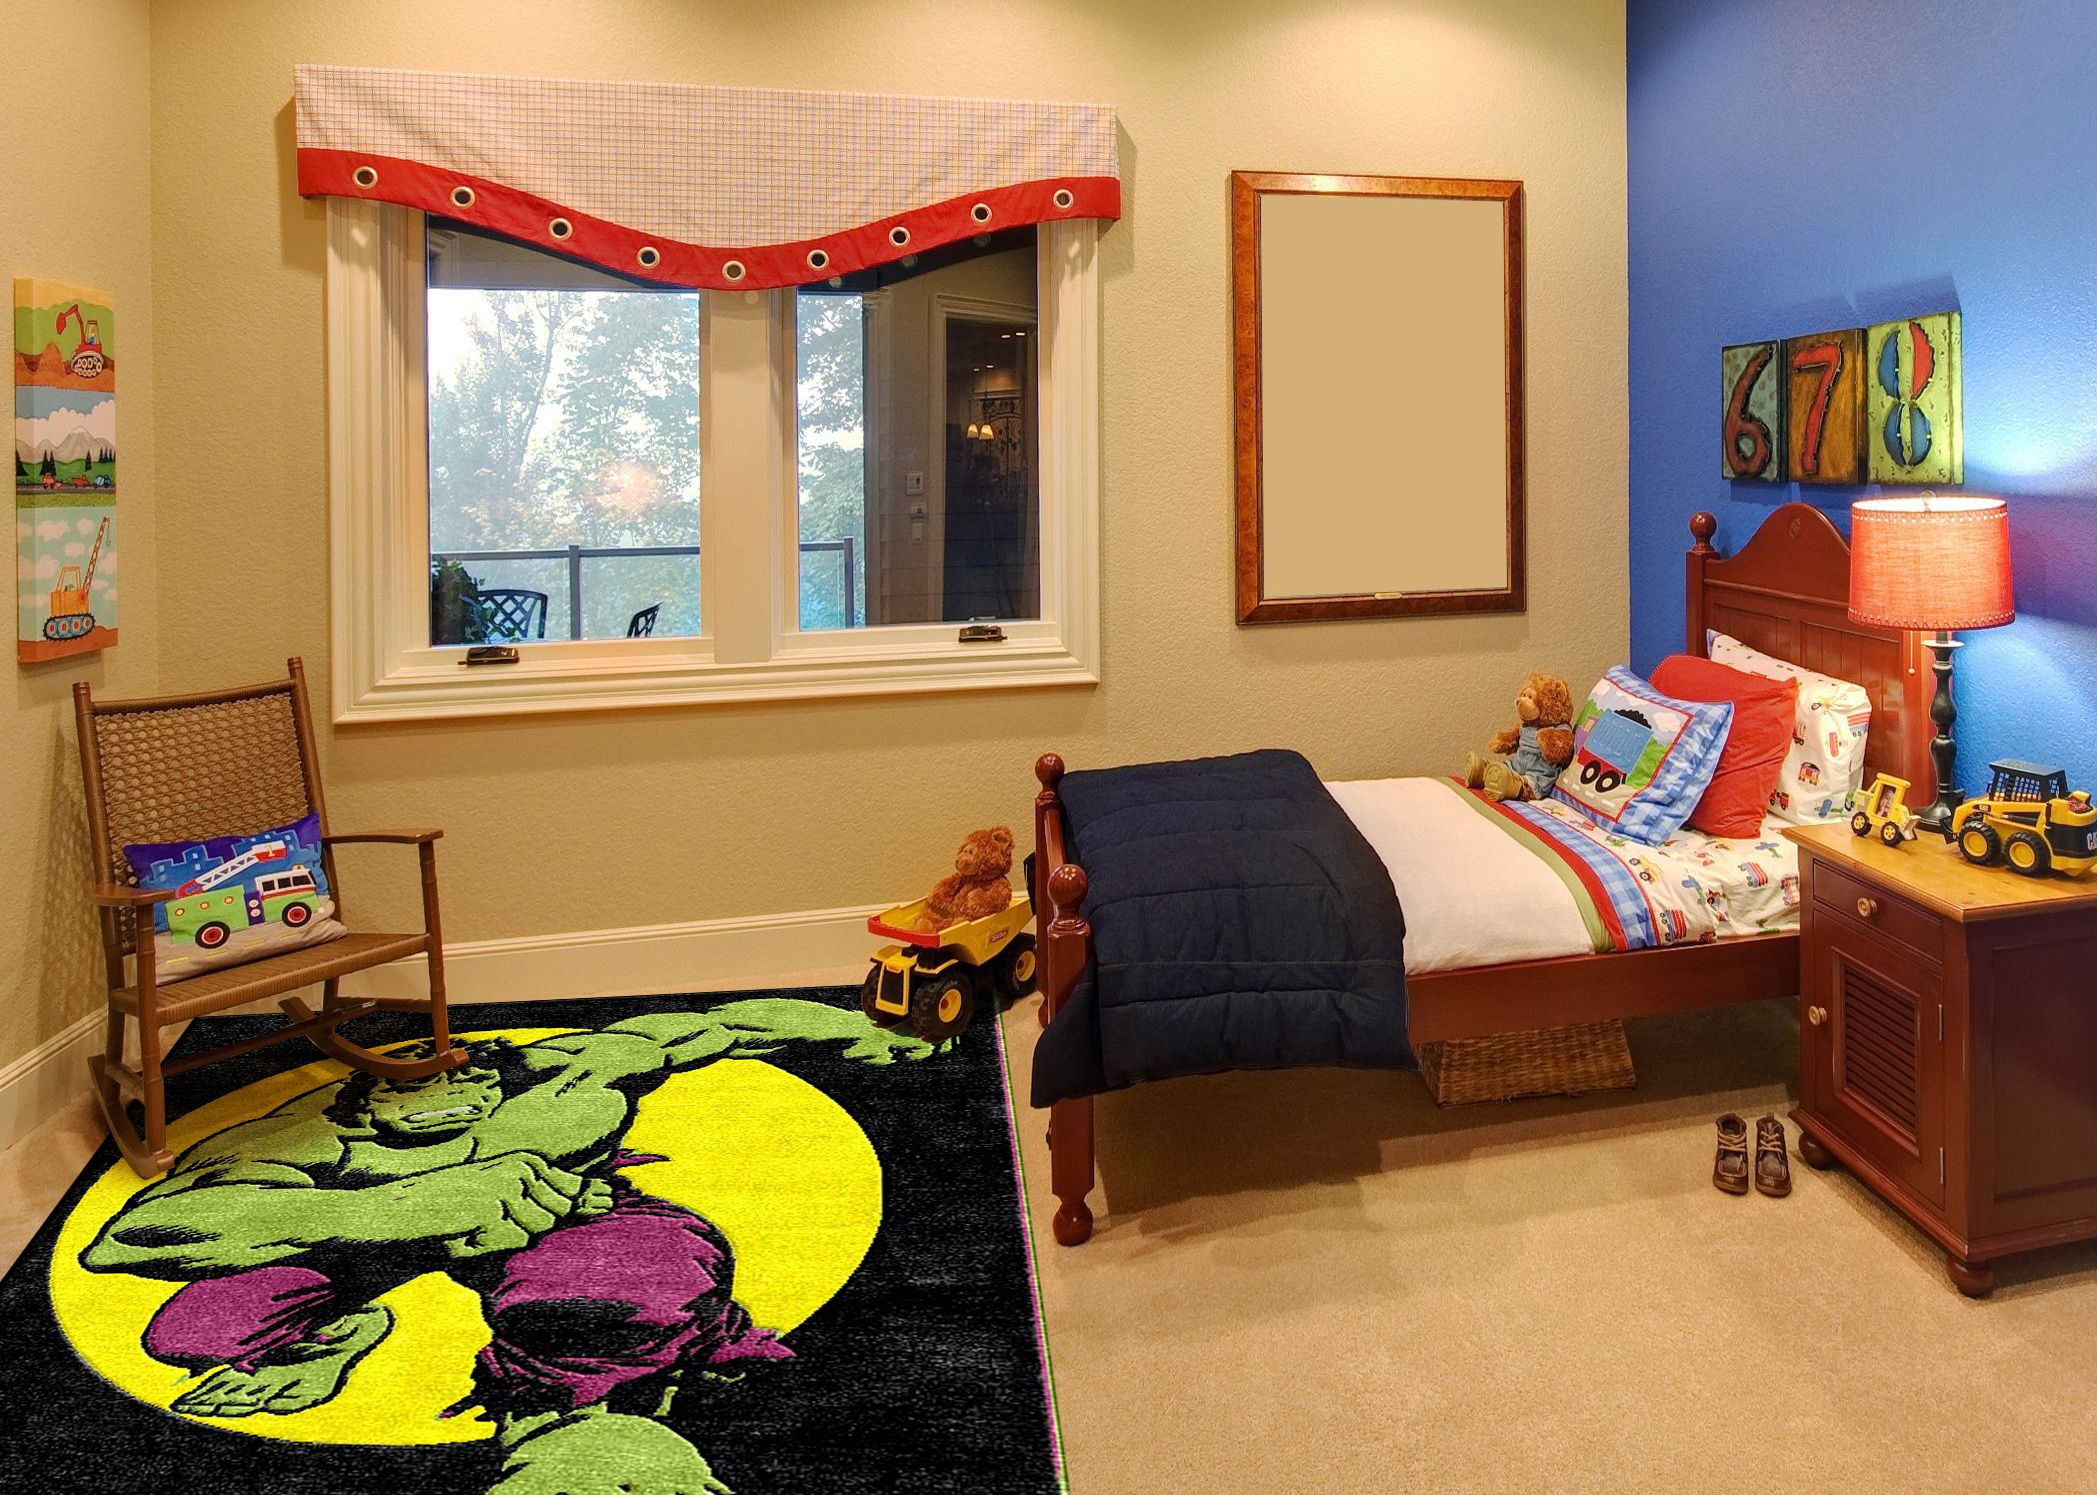 The Incredible Hulk Childrens Rug Bedroom Wall Stickerskids Room Designinterior